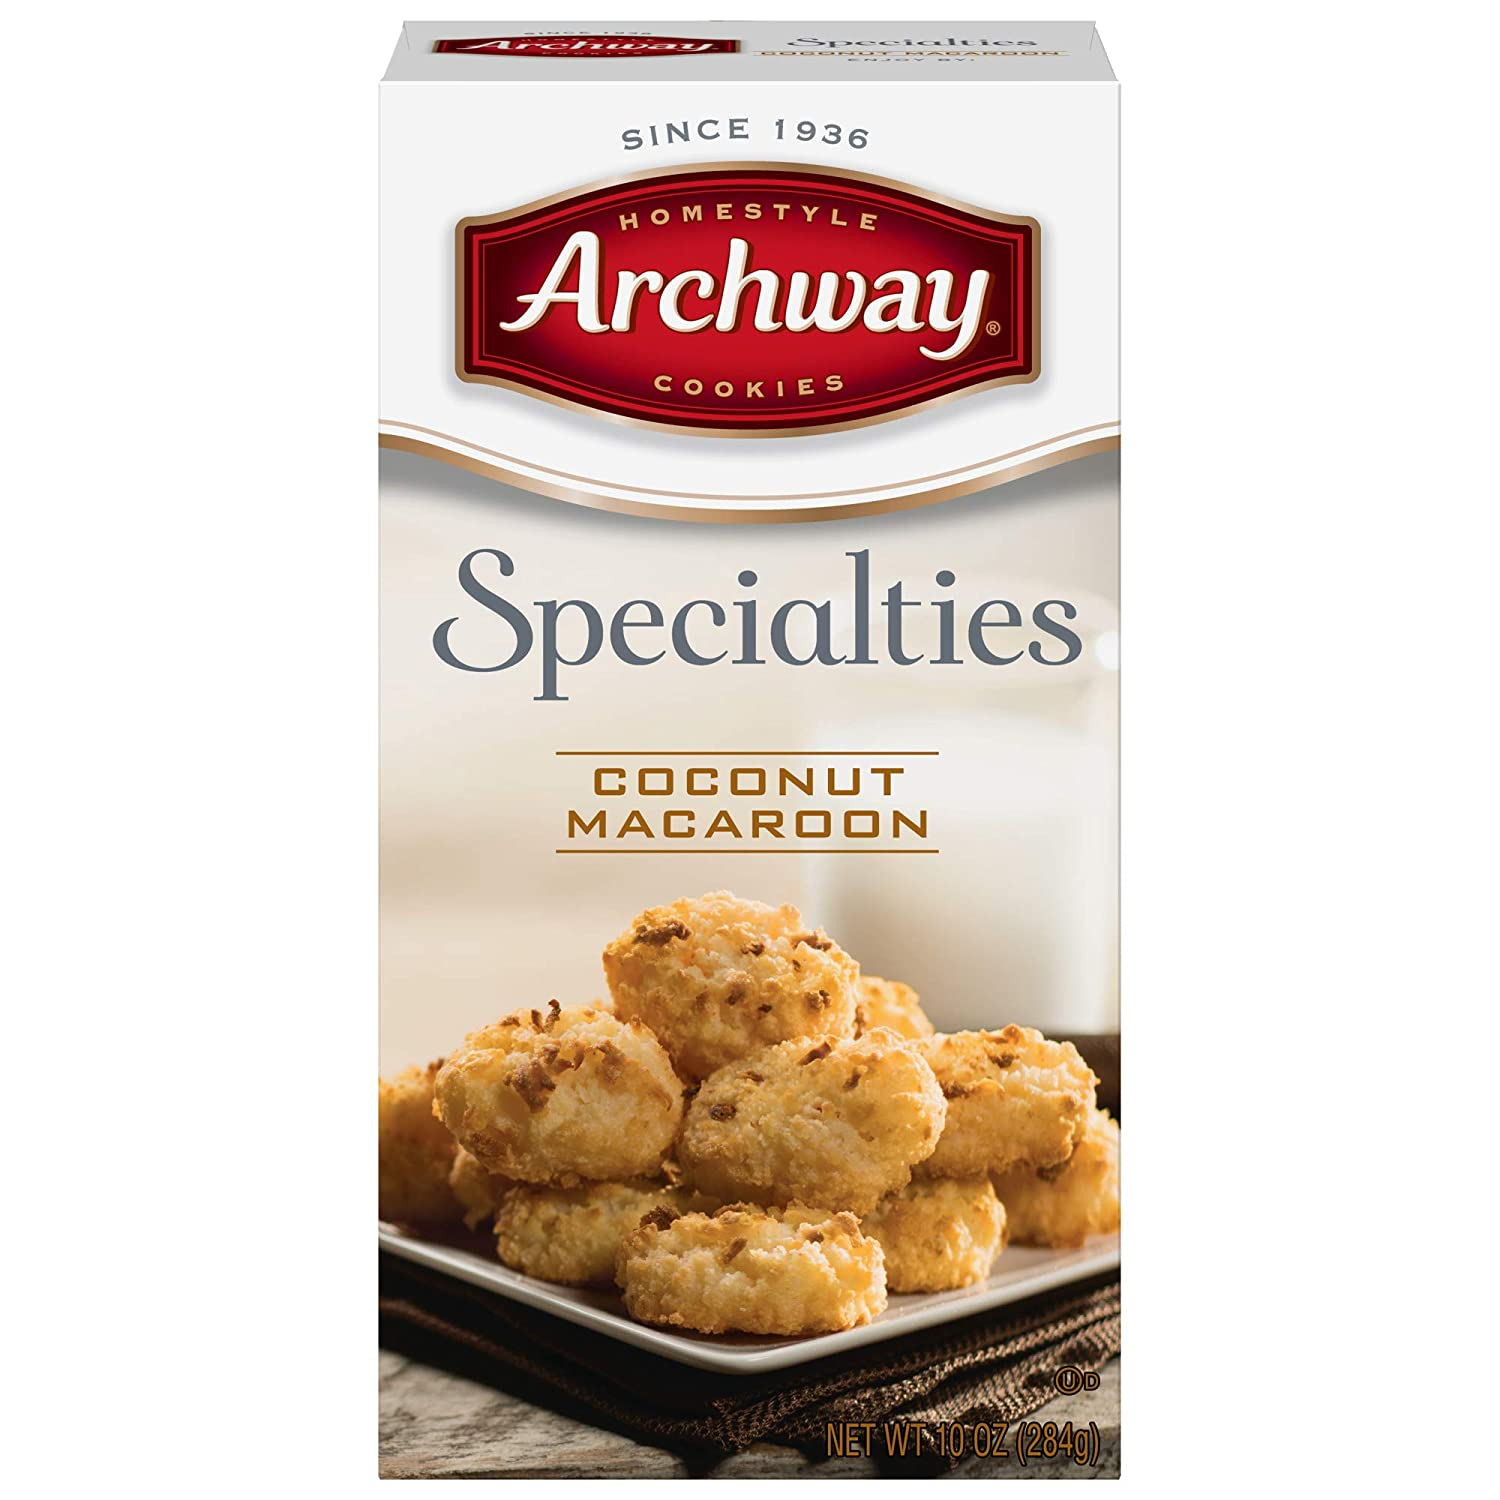 Archway Coconut Macaroons 10oz Box Pack Of 3 Amazon Com Grocery Gourmet Food